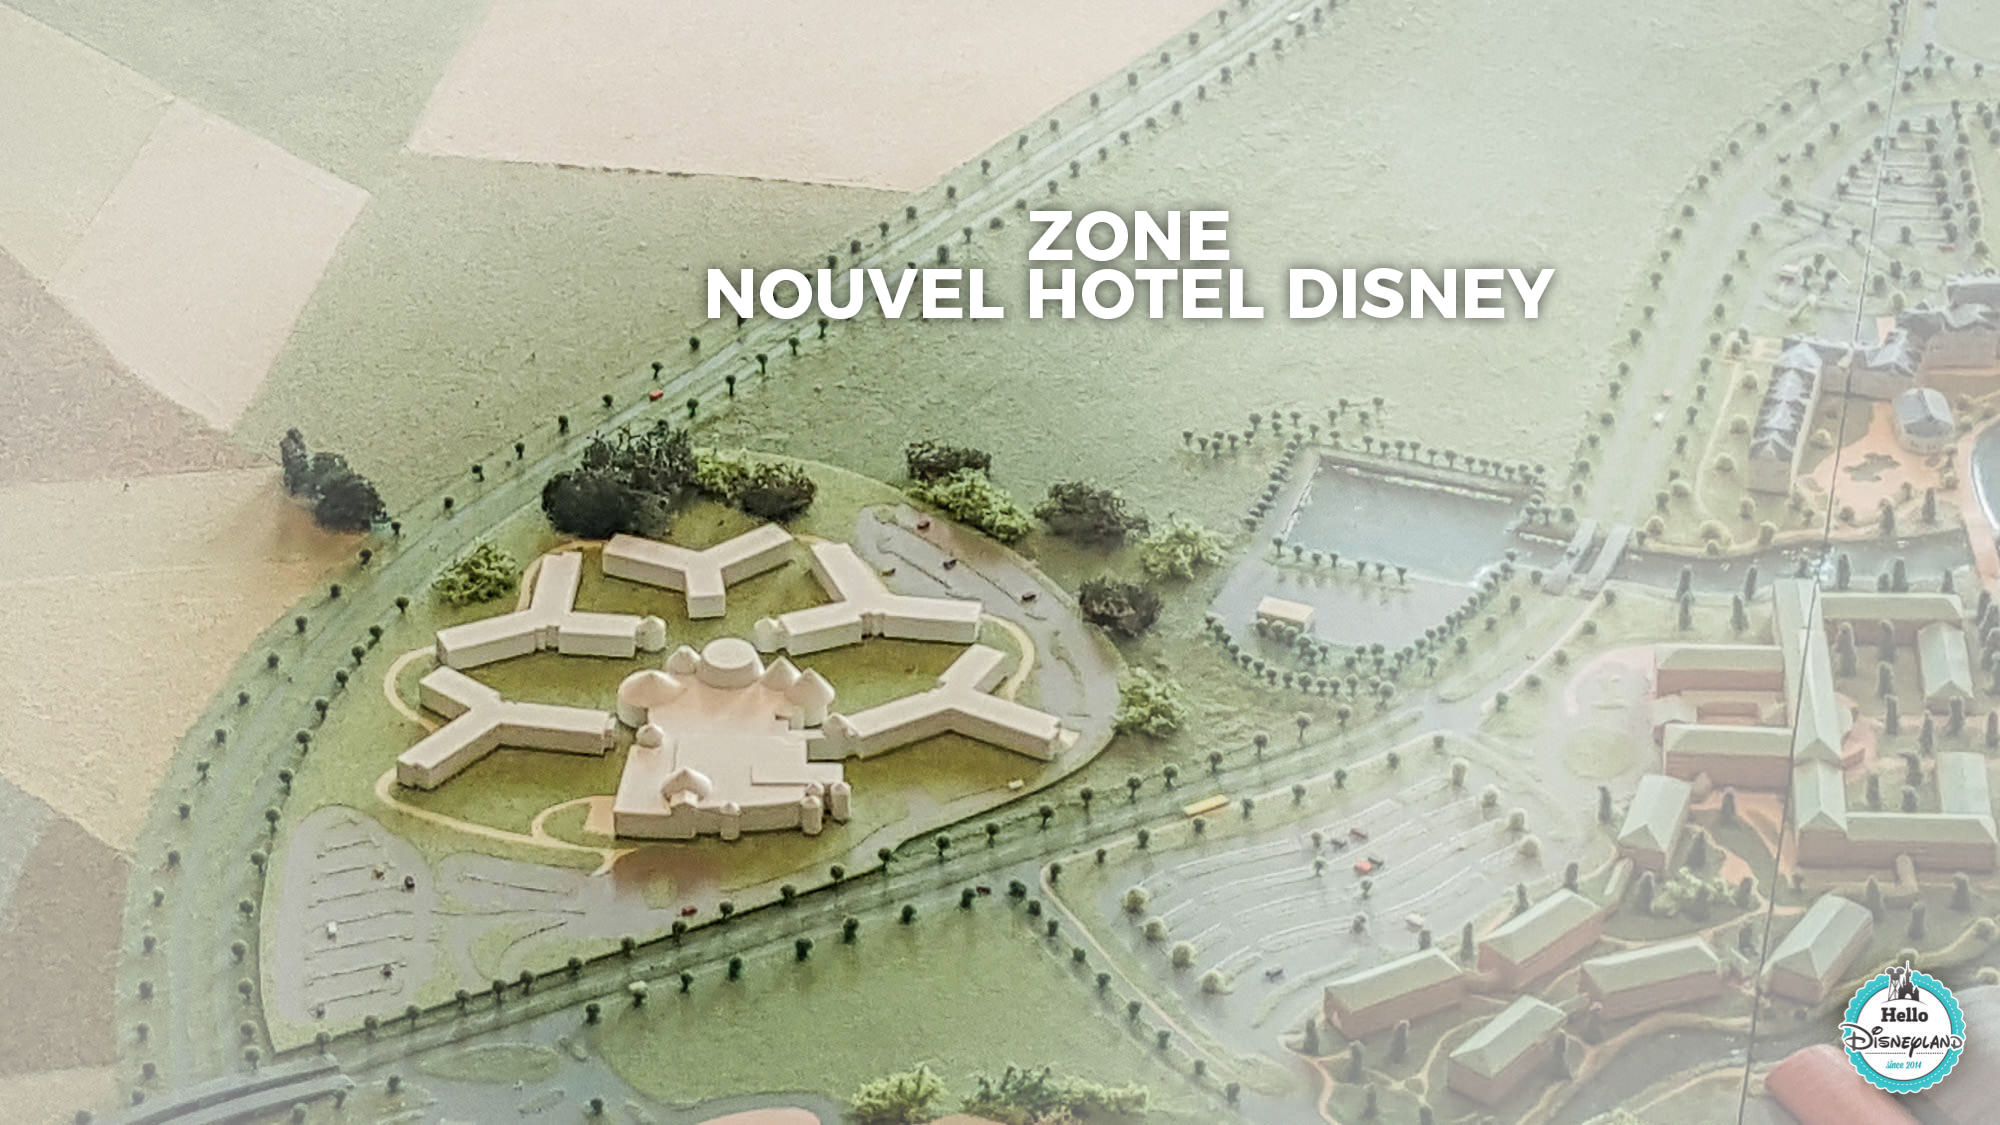 Troisième parc Disney - evolution Disneyland Paris 2030-6 copie